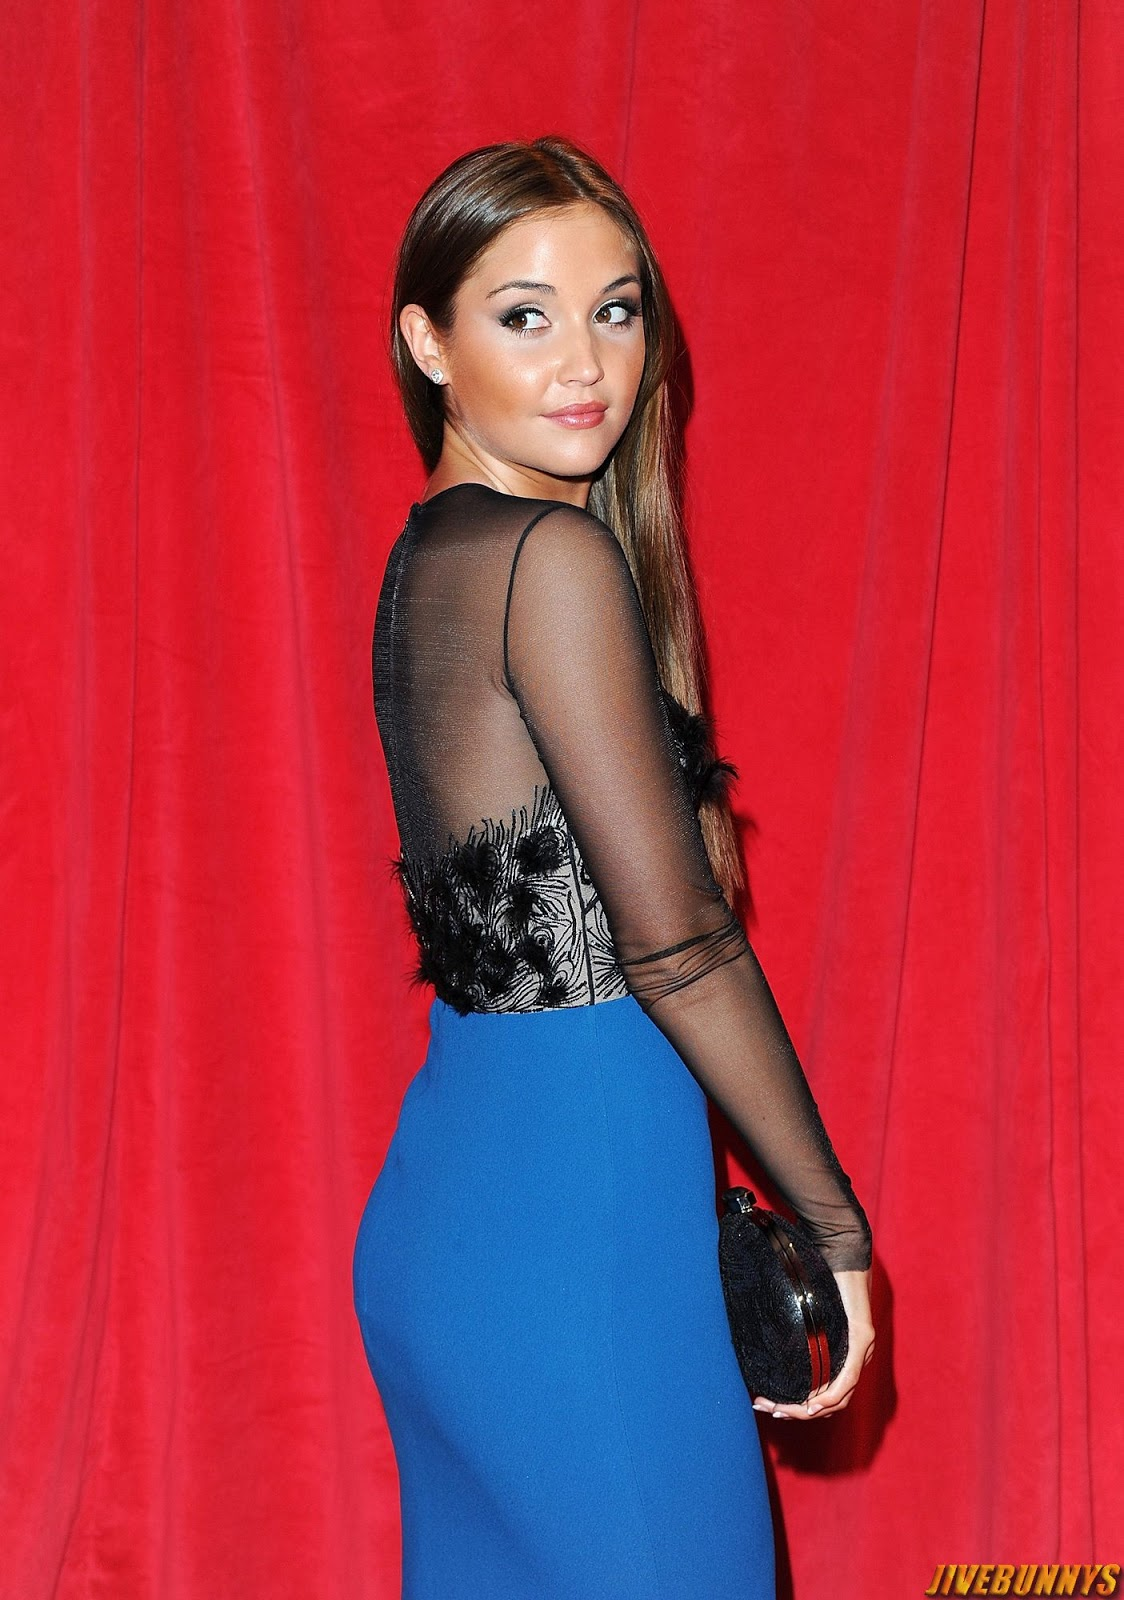 British Soap Awards 2014 in London - May 24, 2014